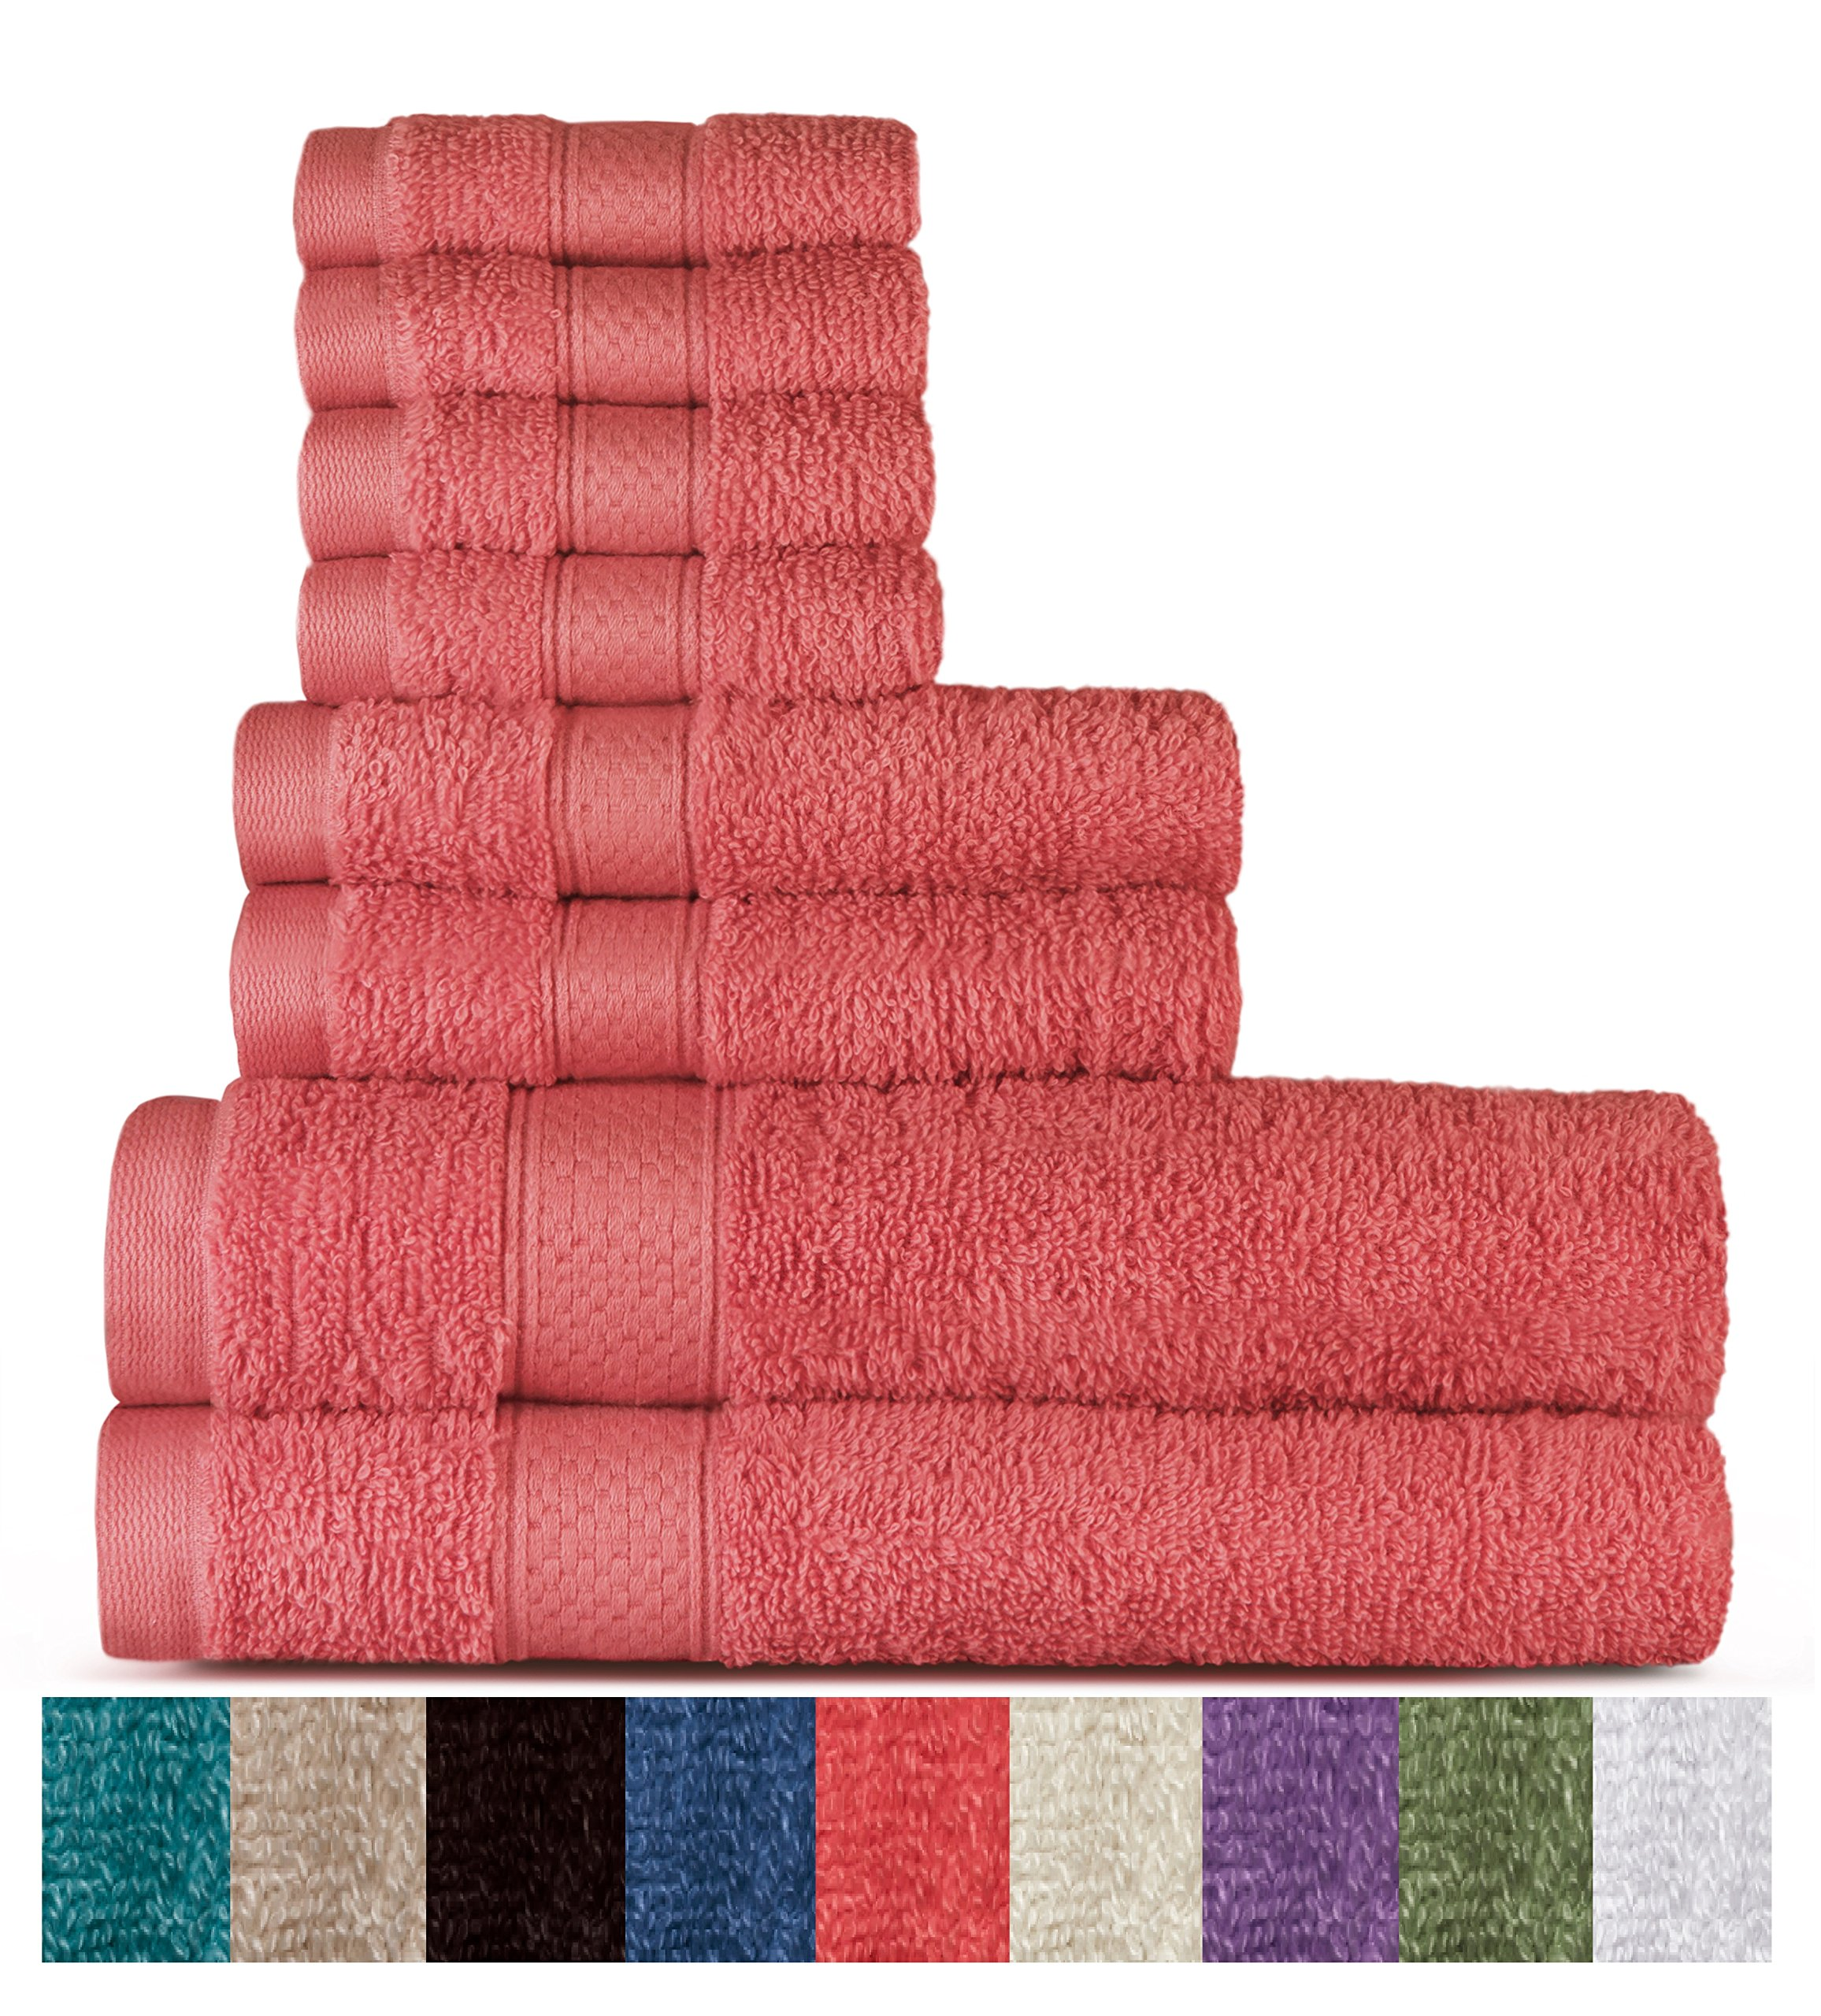 100% Cotton 8 Piece Towel Set (Coral); 2 Bath Towels, 2 Hand Towels and 4 Washcloths, Machine Washable, Super Soft by WELHOME